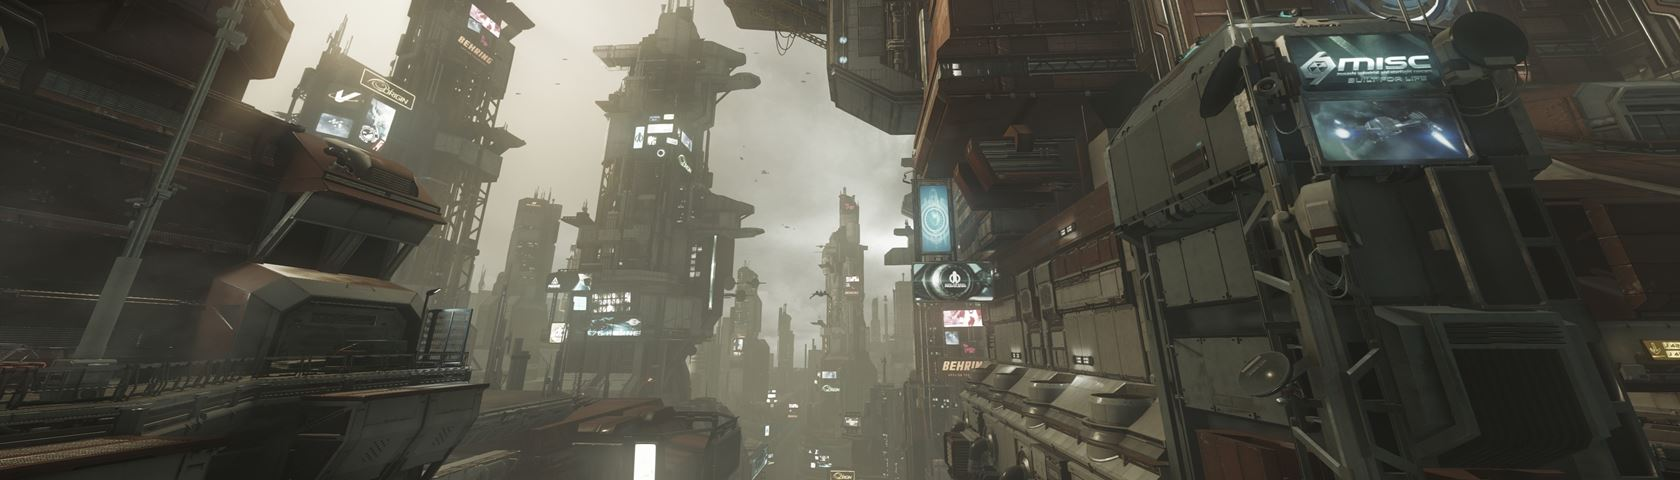 Star Citizen Ships Fly By